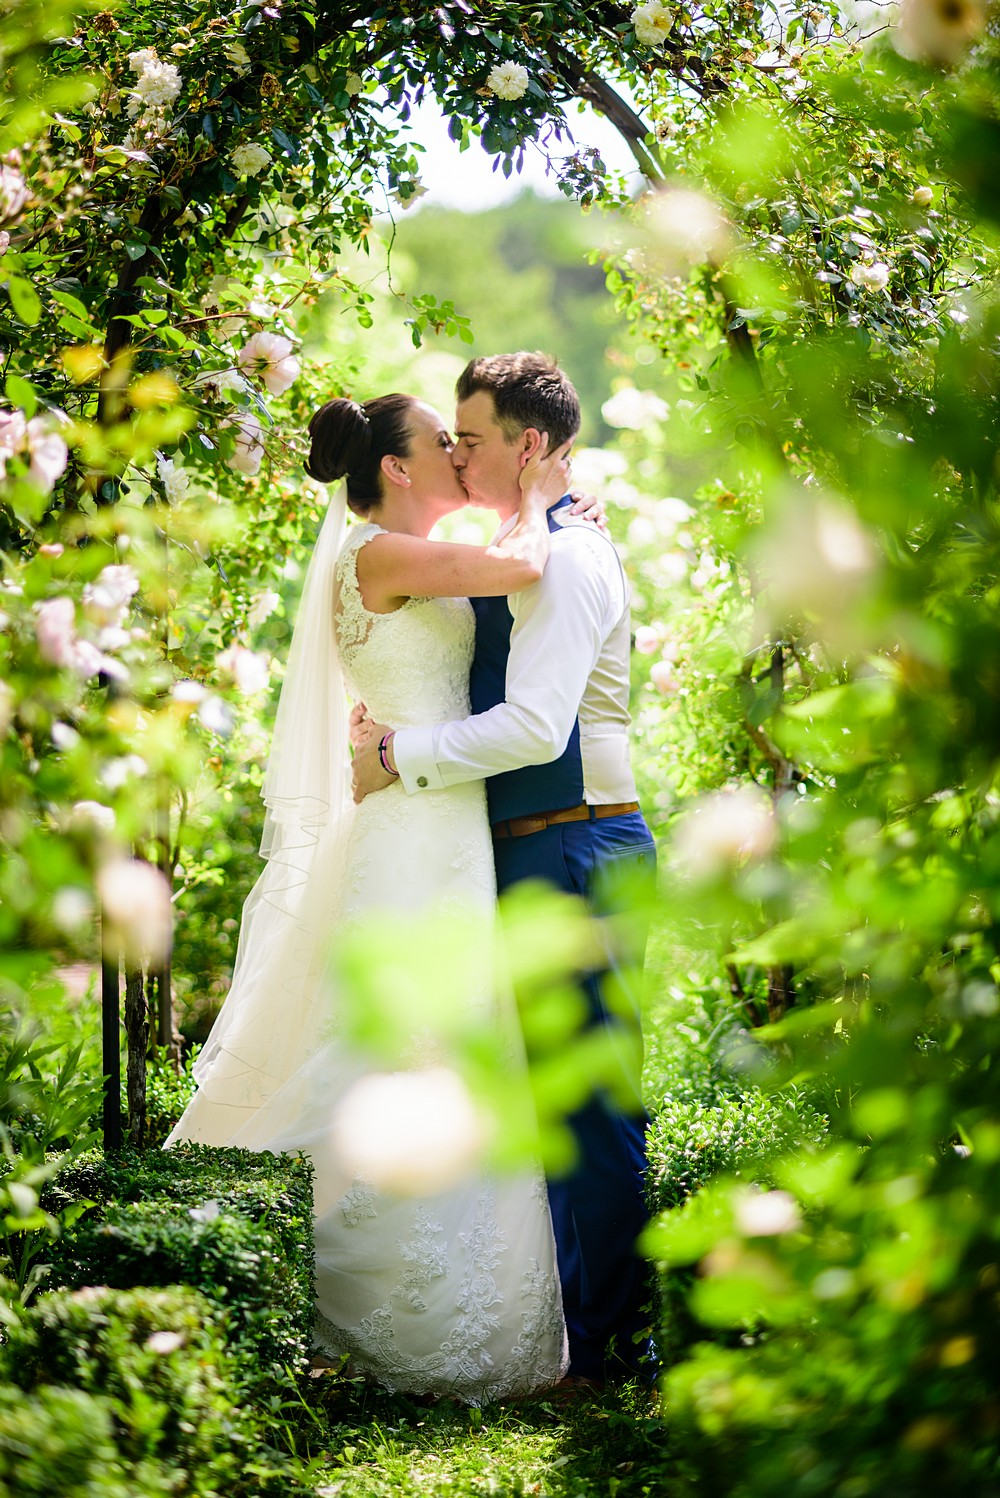 Wedding photography in the gardens at Chateau Forge Du Roy 71